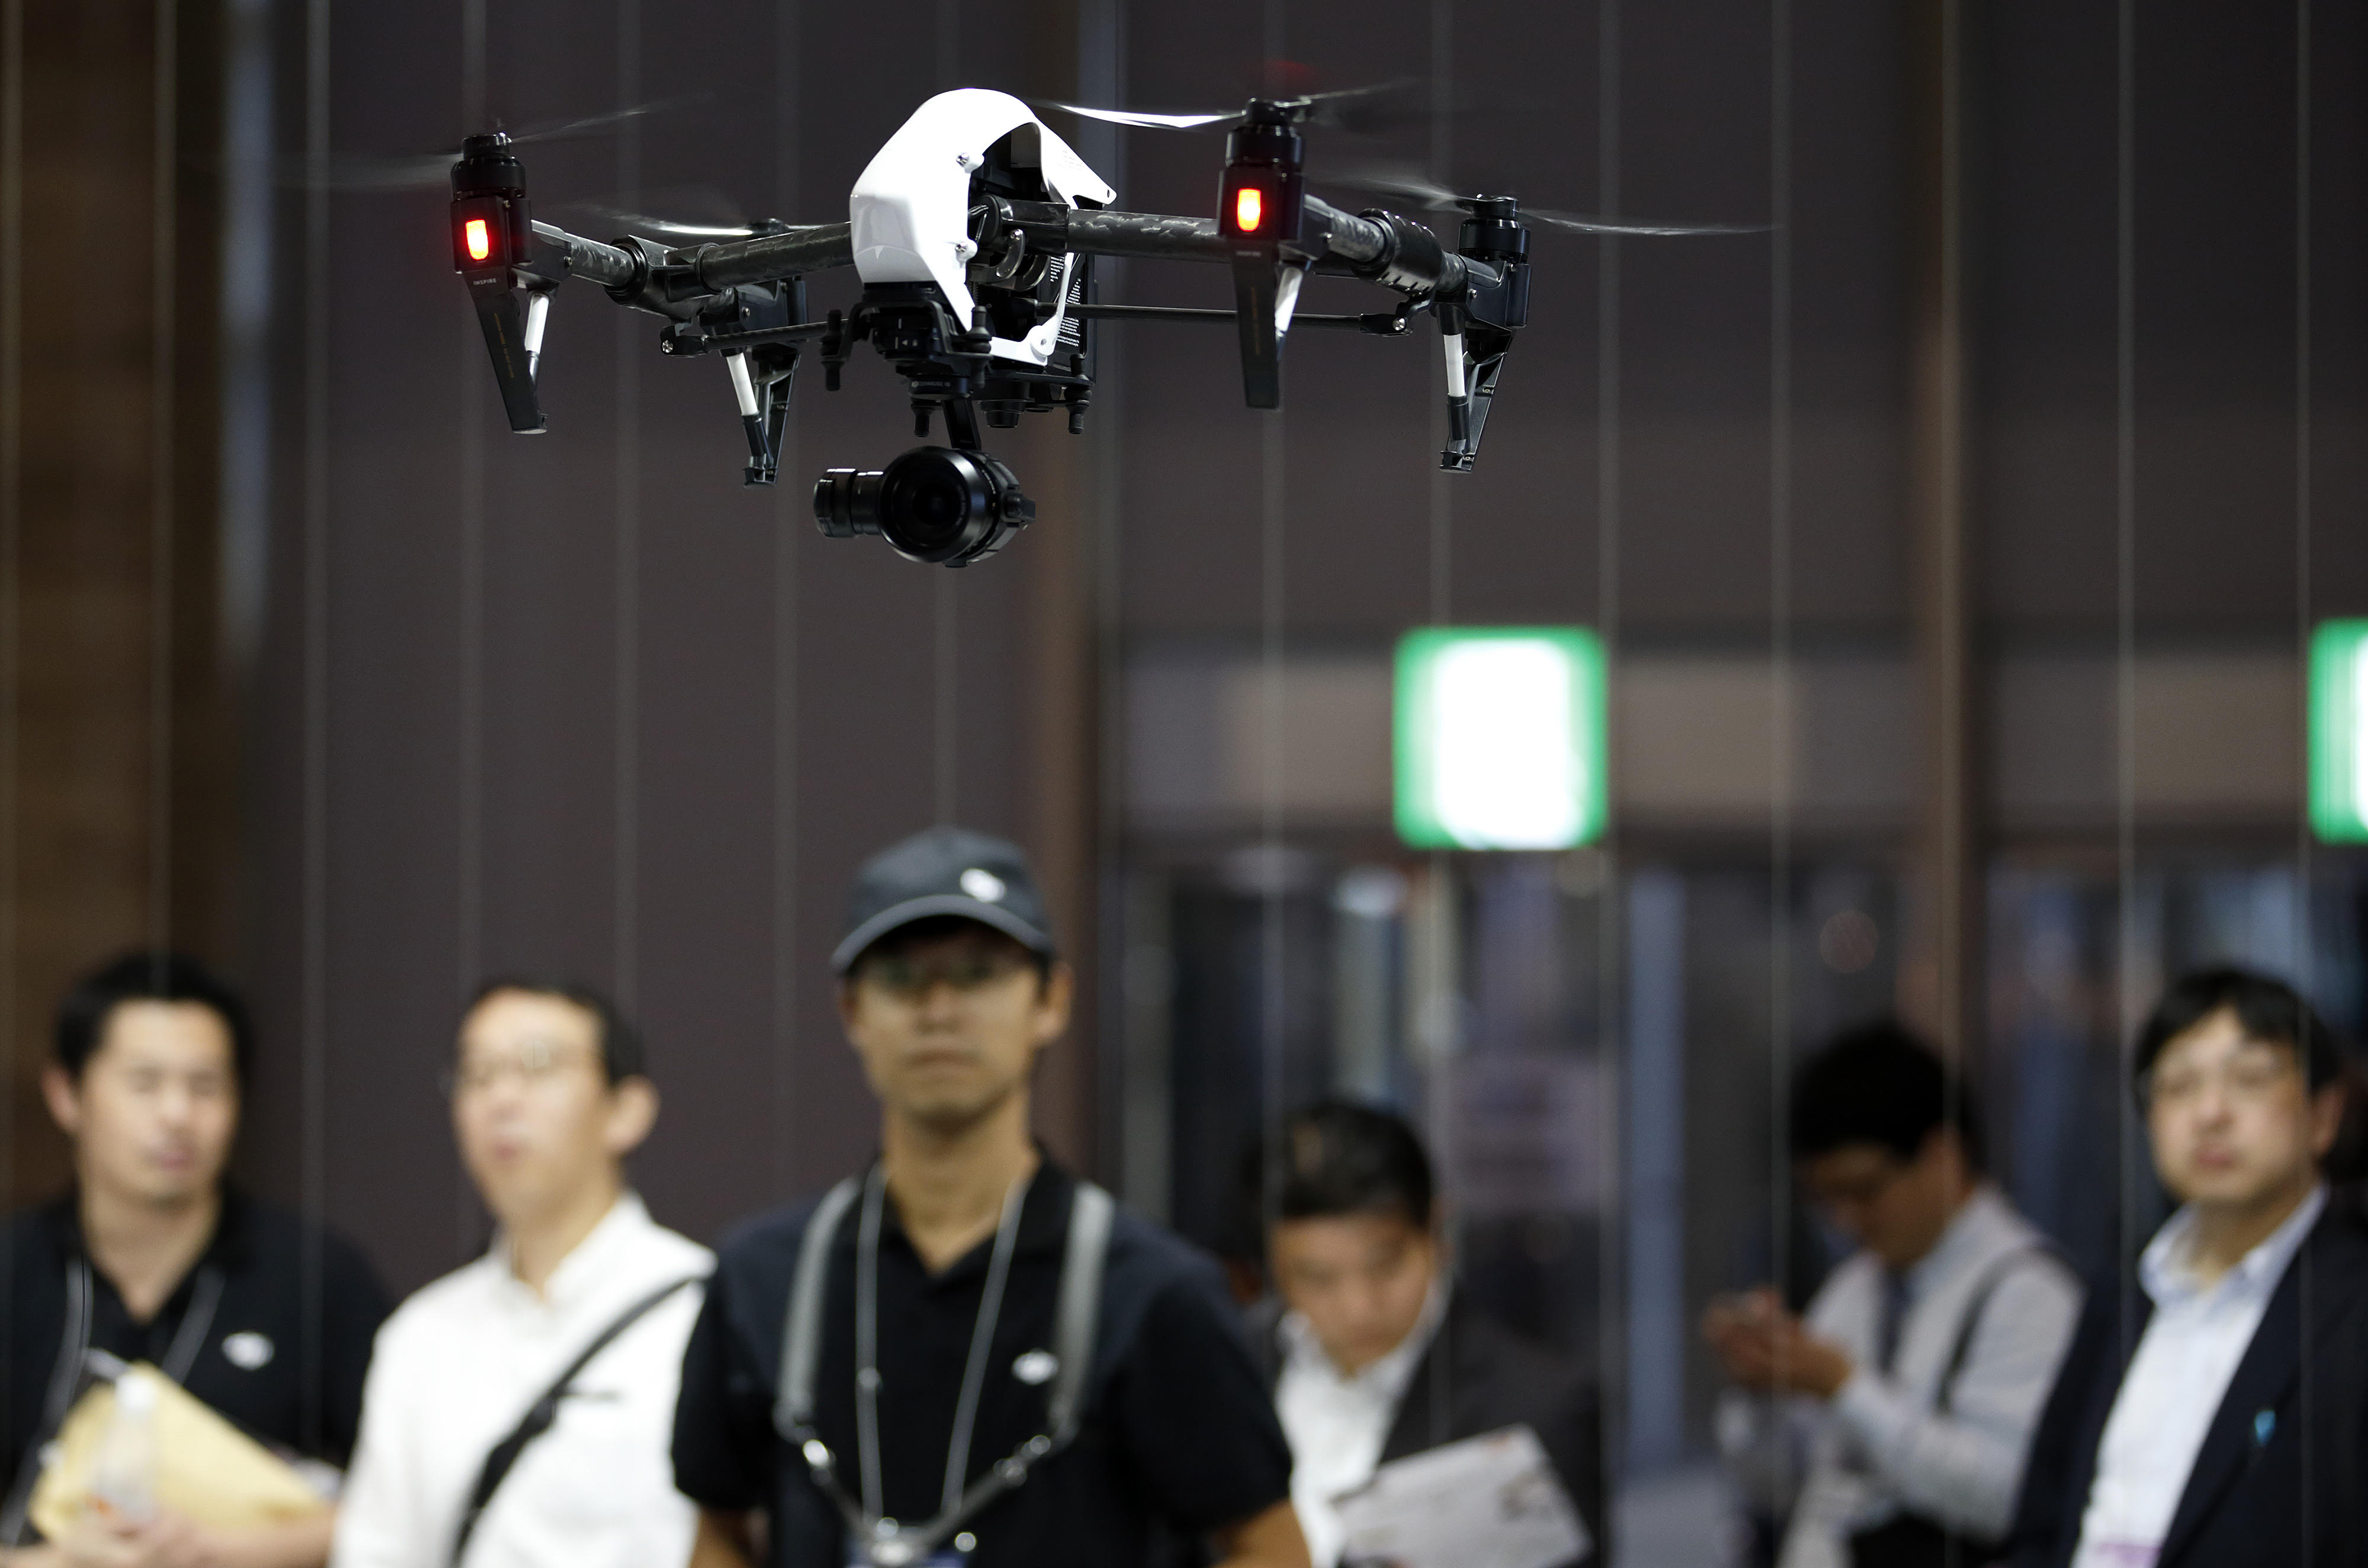 A DJI Inspire 1 drone, manufactured by SZ DJI Technology Co., flies at the Cutting-Edge IT & Electronics Comprehensive Exhibition (CEATEC) at Makuhari Messe in Chiba on Oct. 7. | BLOOMBERG